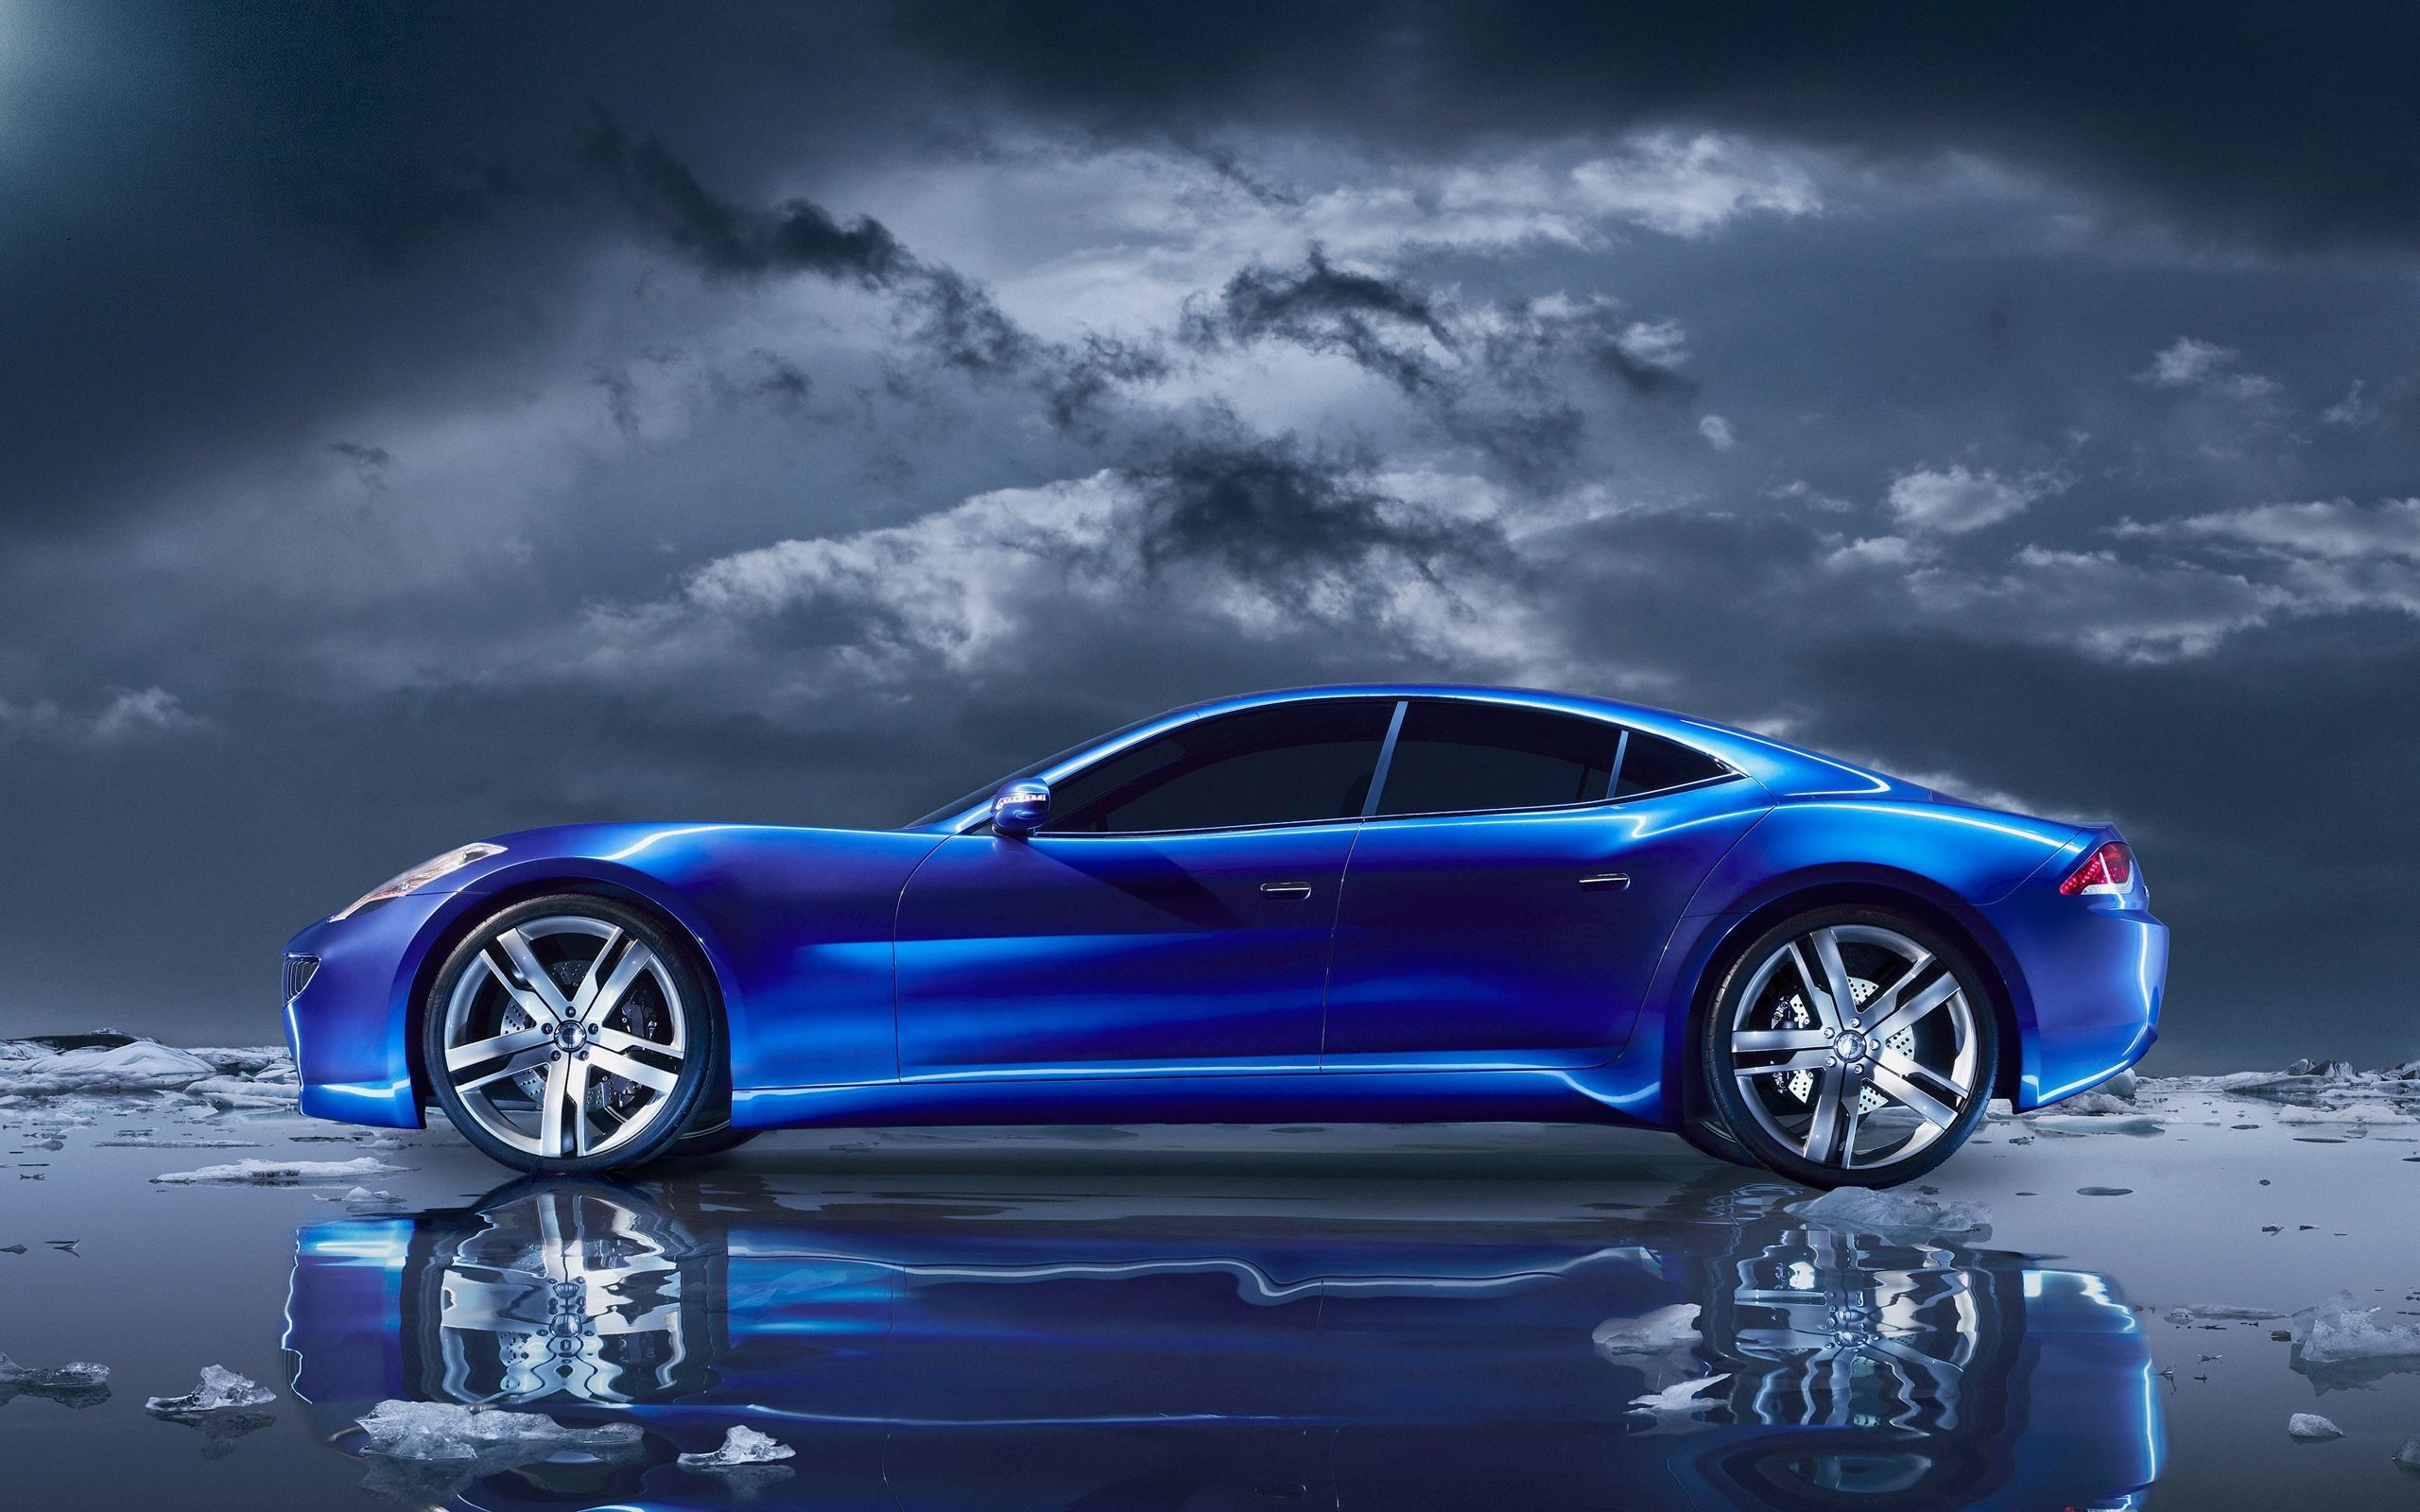 Blue Sports Car Wallpapers Top Free Blue Sports Car